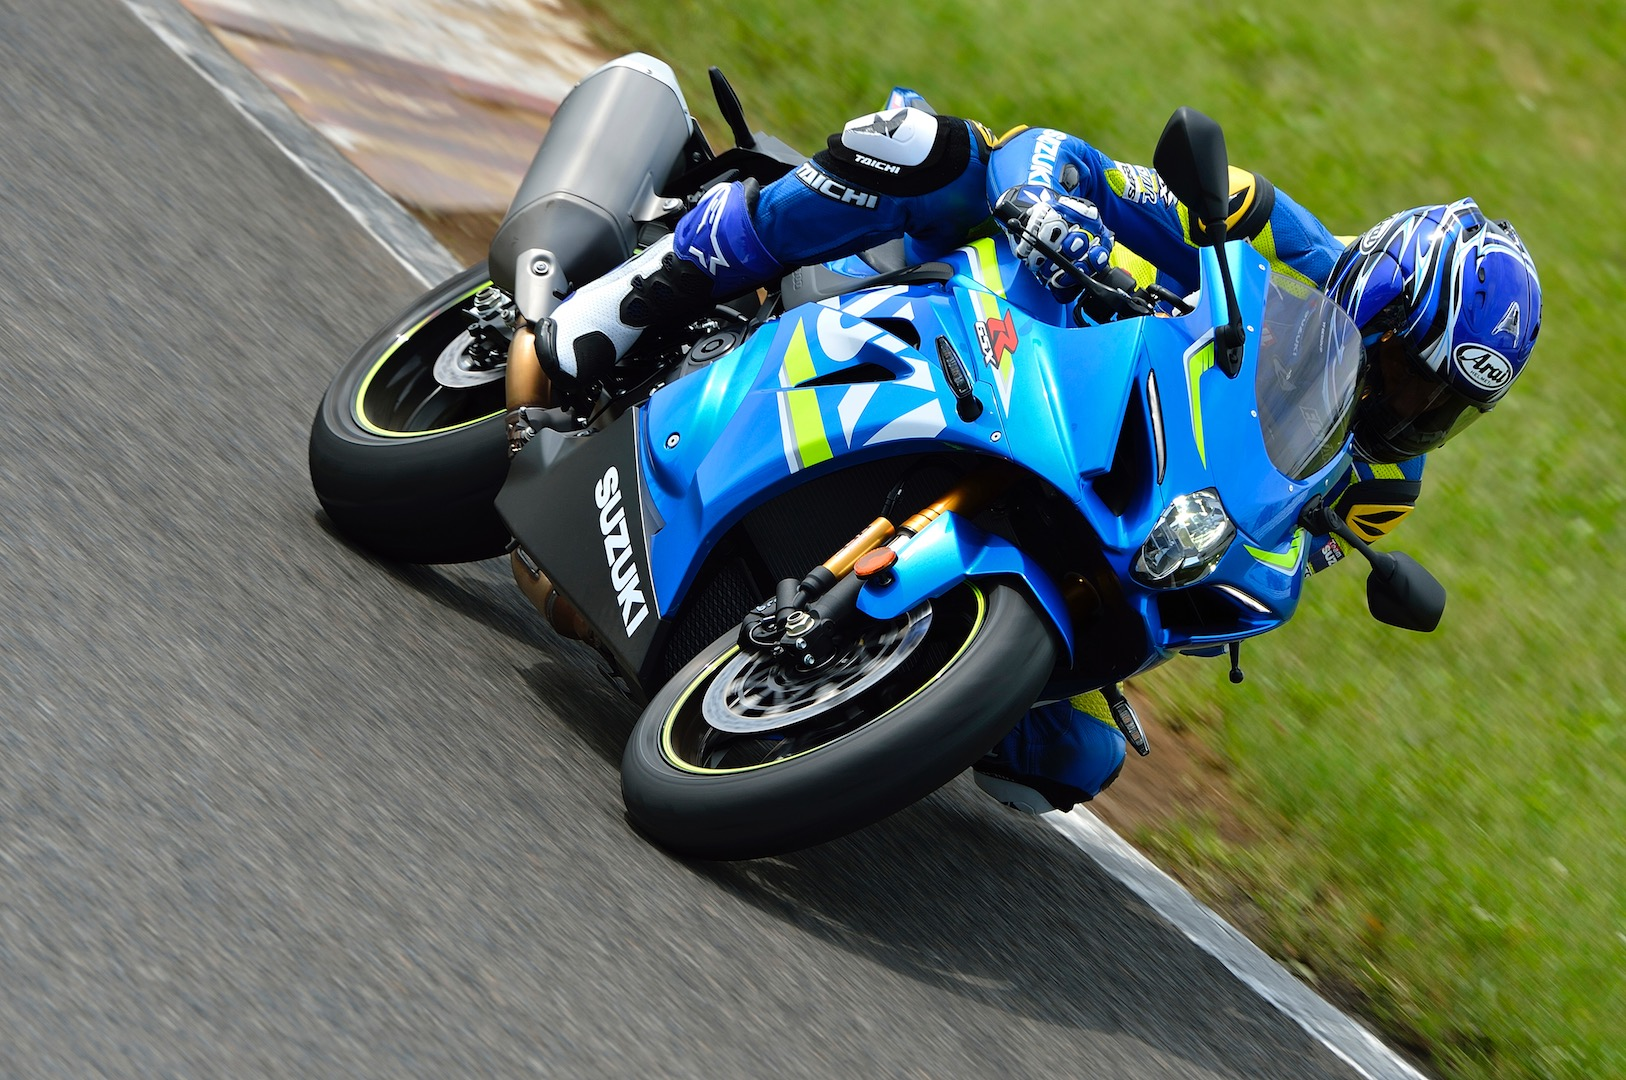 2017 Suzuki GSX-R1000 top speed